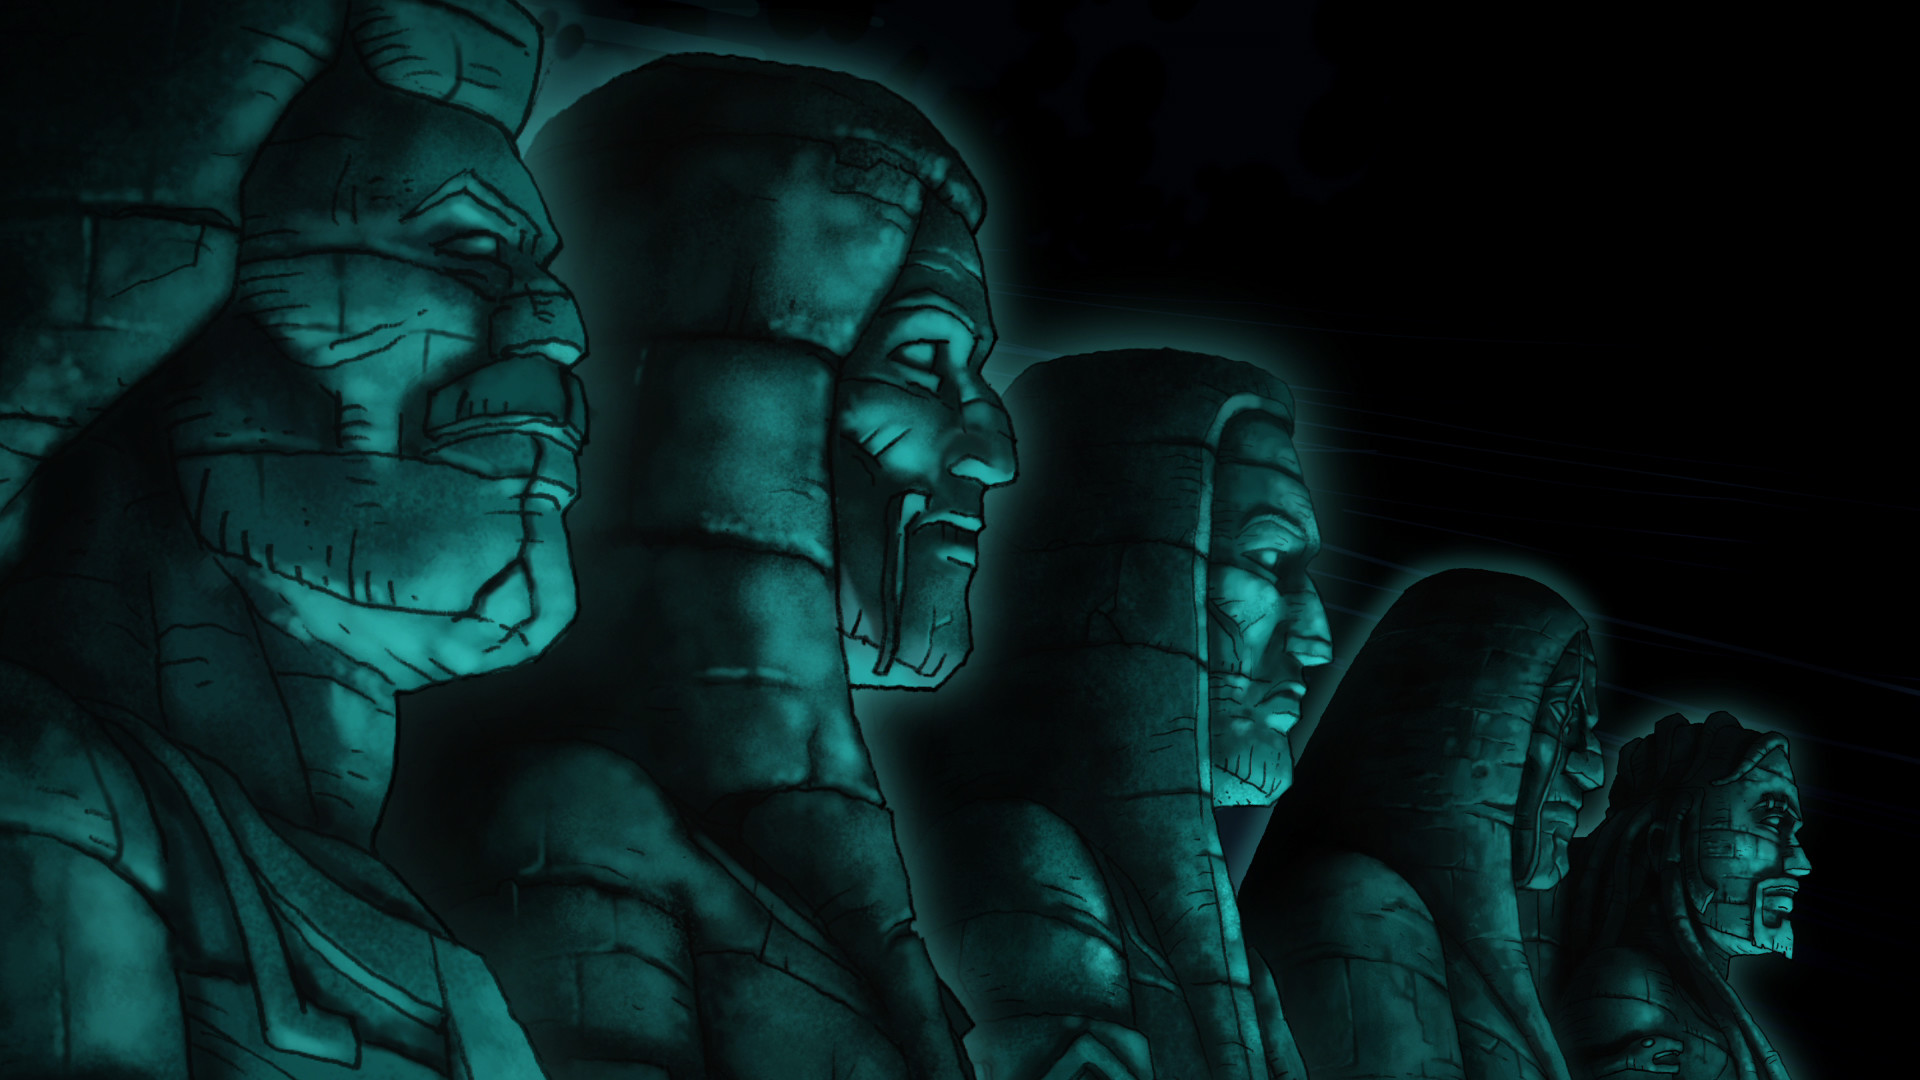 1920x1080 Free dethklok wallpaper background